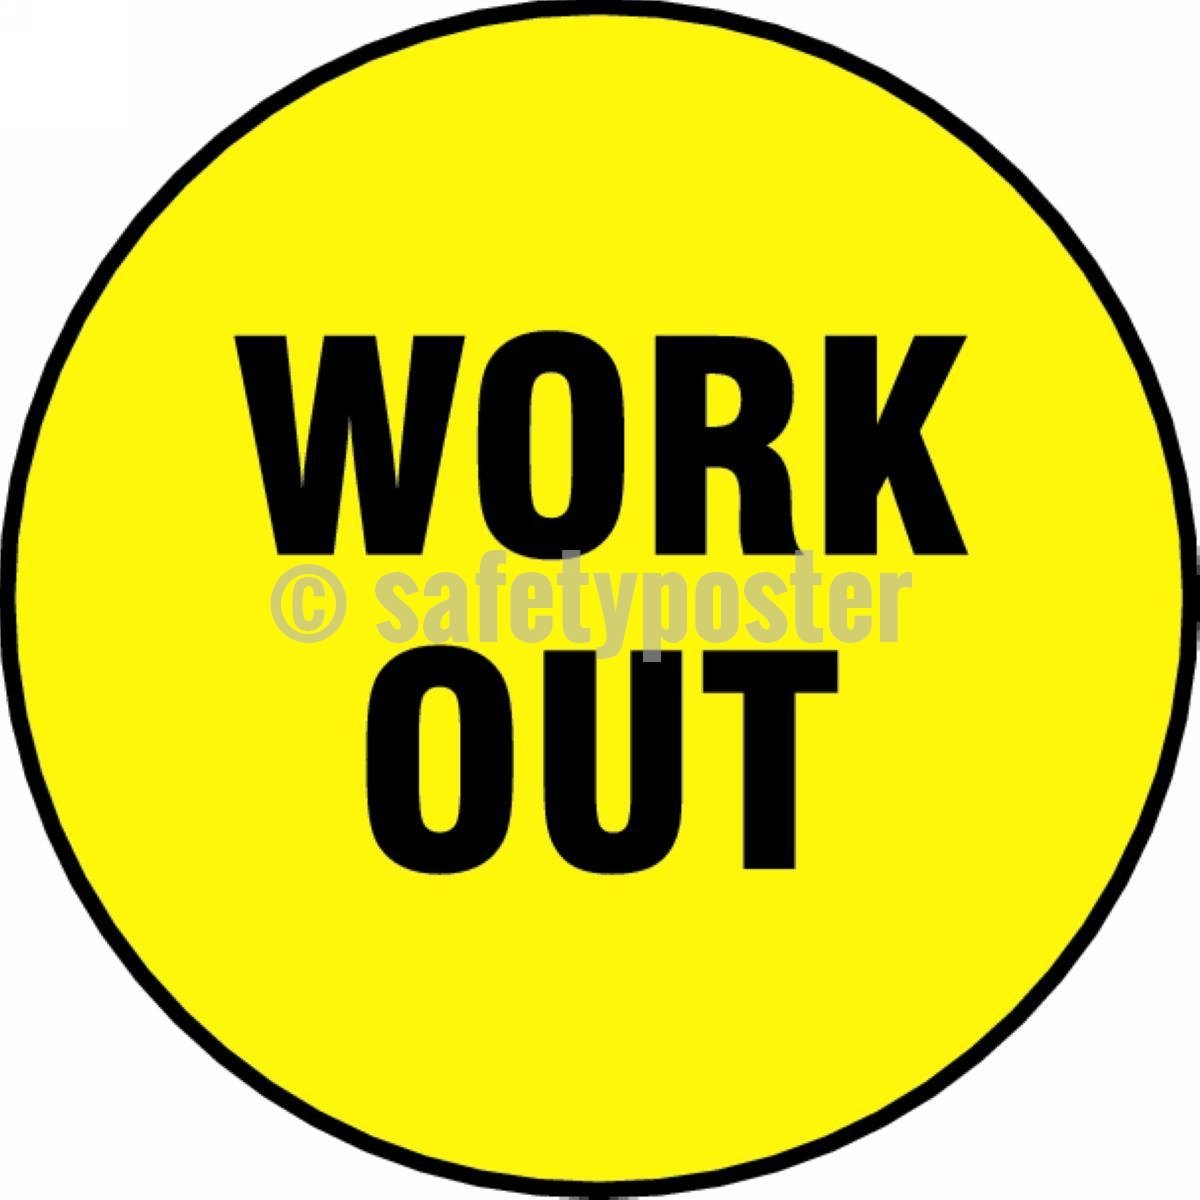 Work Out - Floor Sign Adhesive Signs